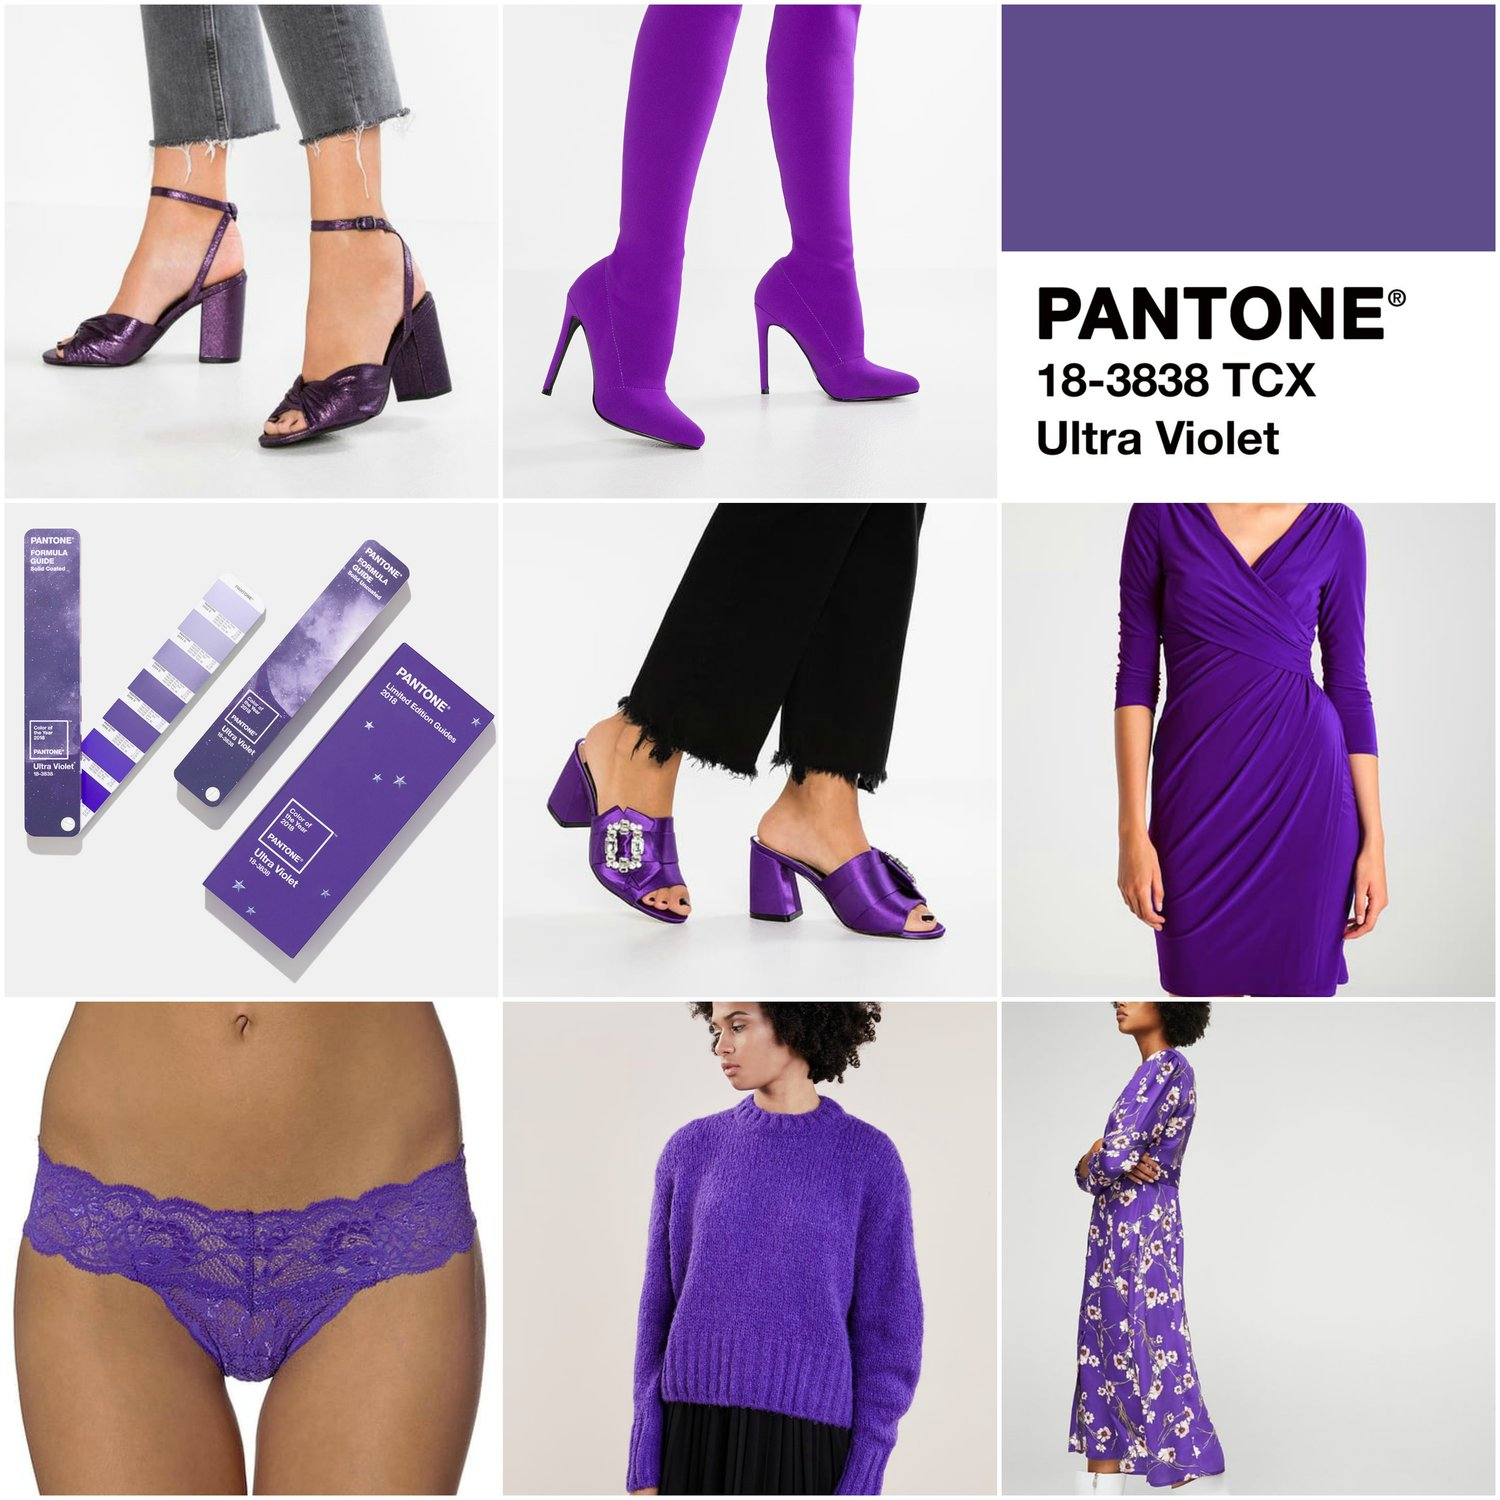 8efa1cff12208 7 Picks of Ultra Violet: Pantone's Color of the Year 2018 — Rhoyally Chic